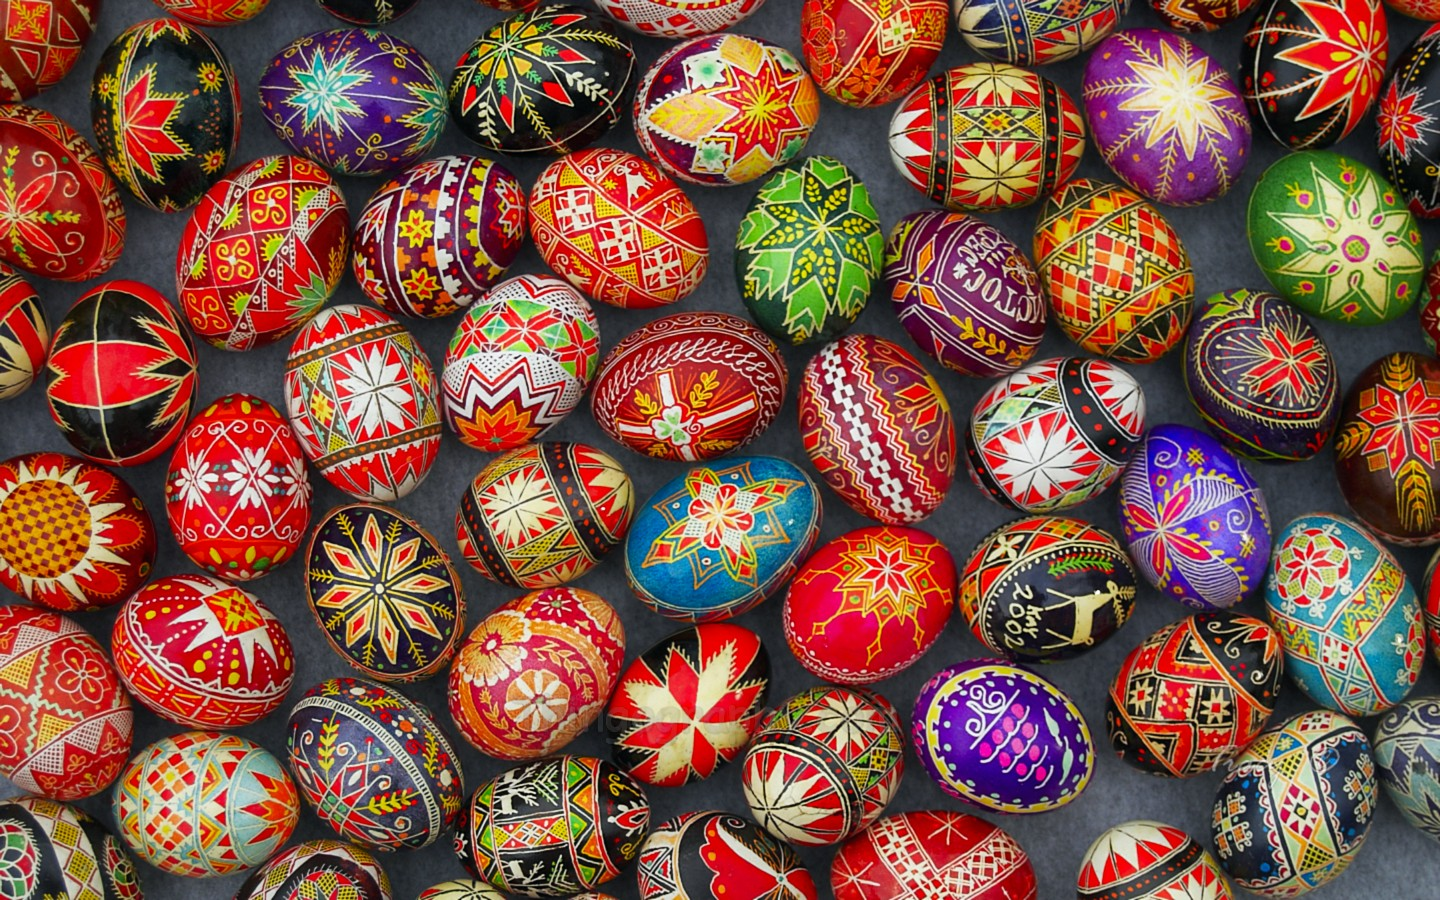 ukrainiang-easter-eggs-1.jpg